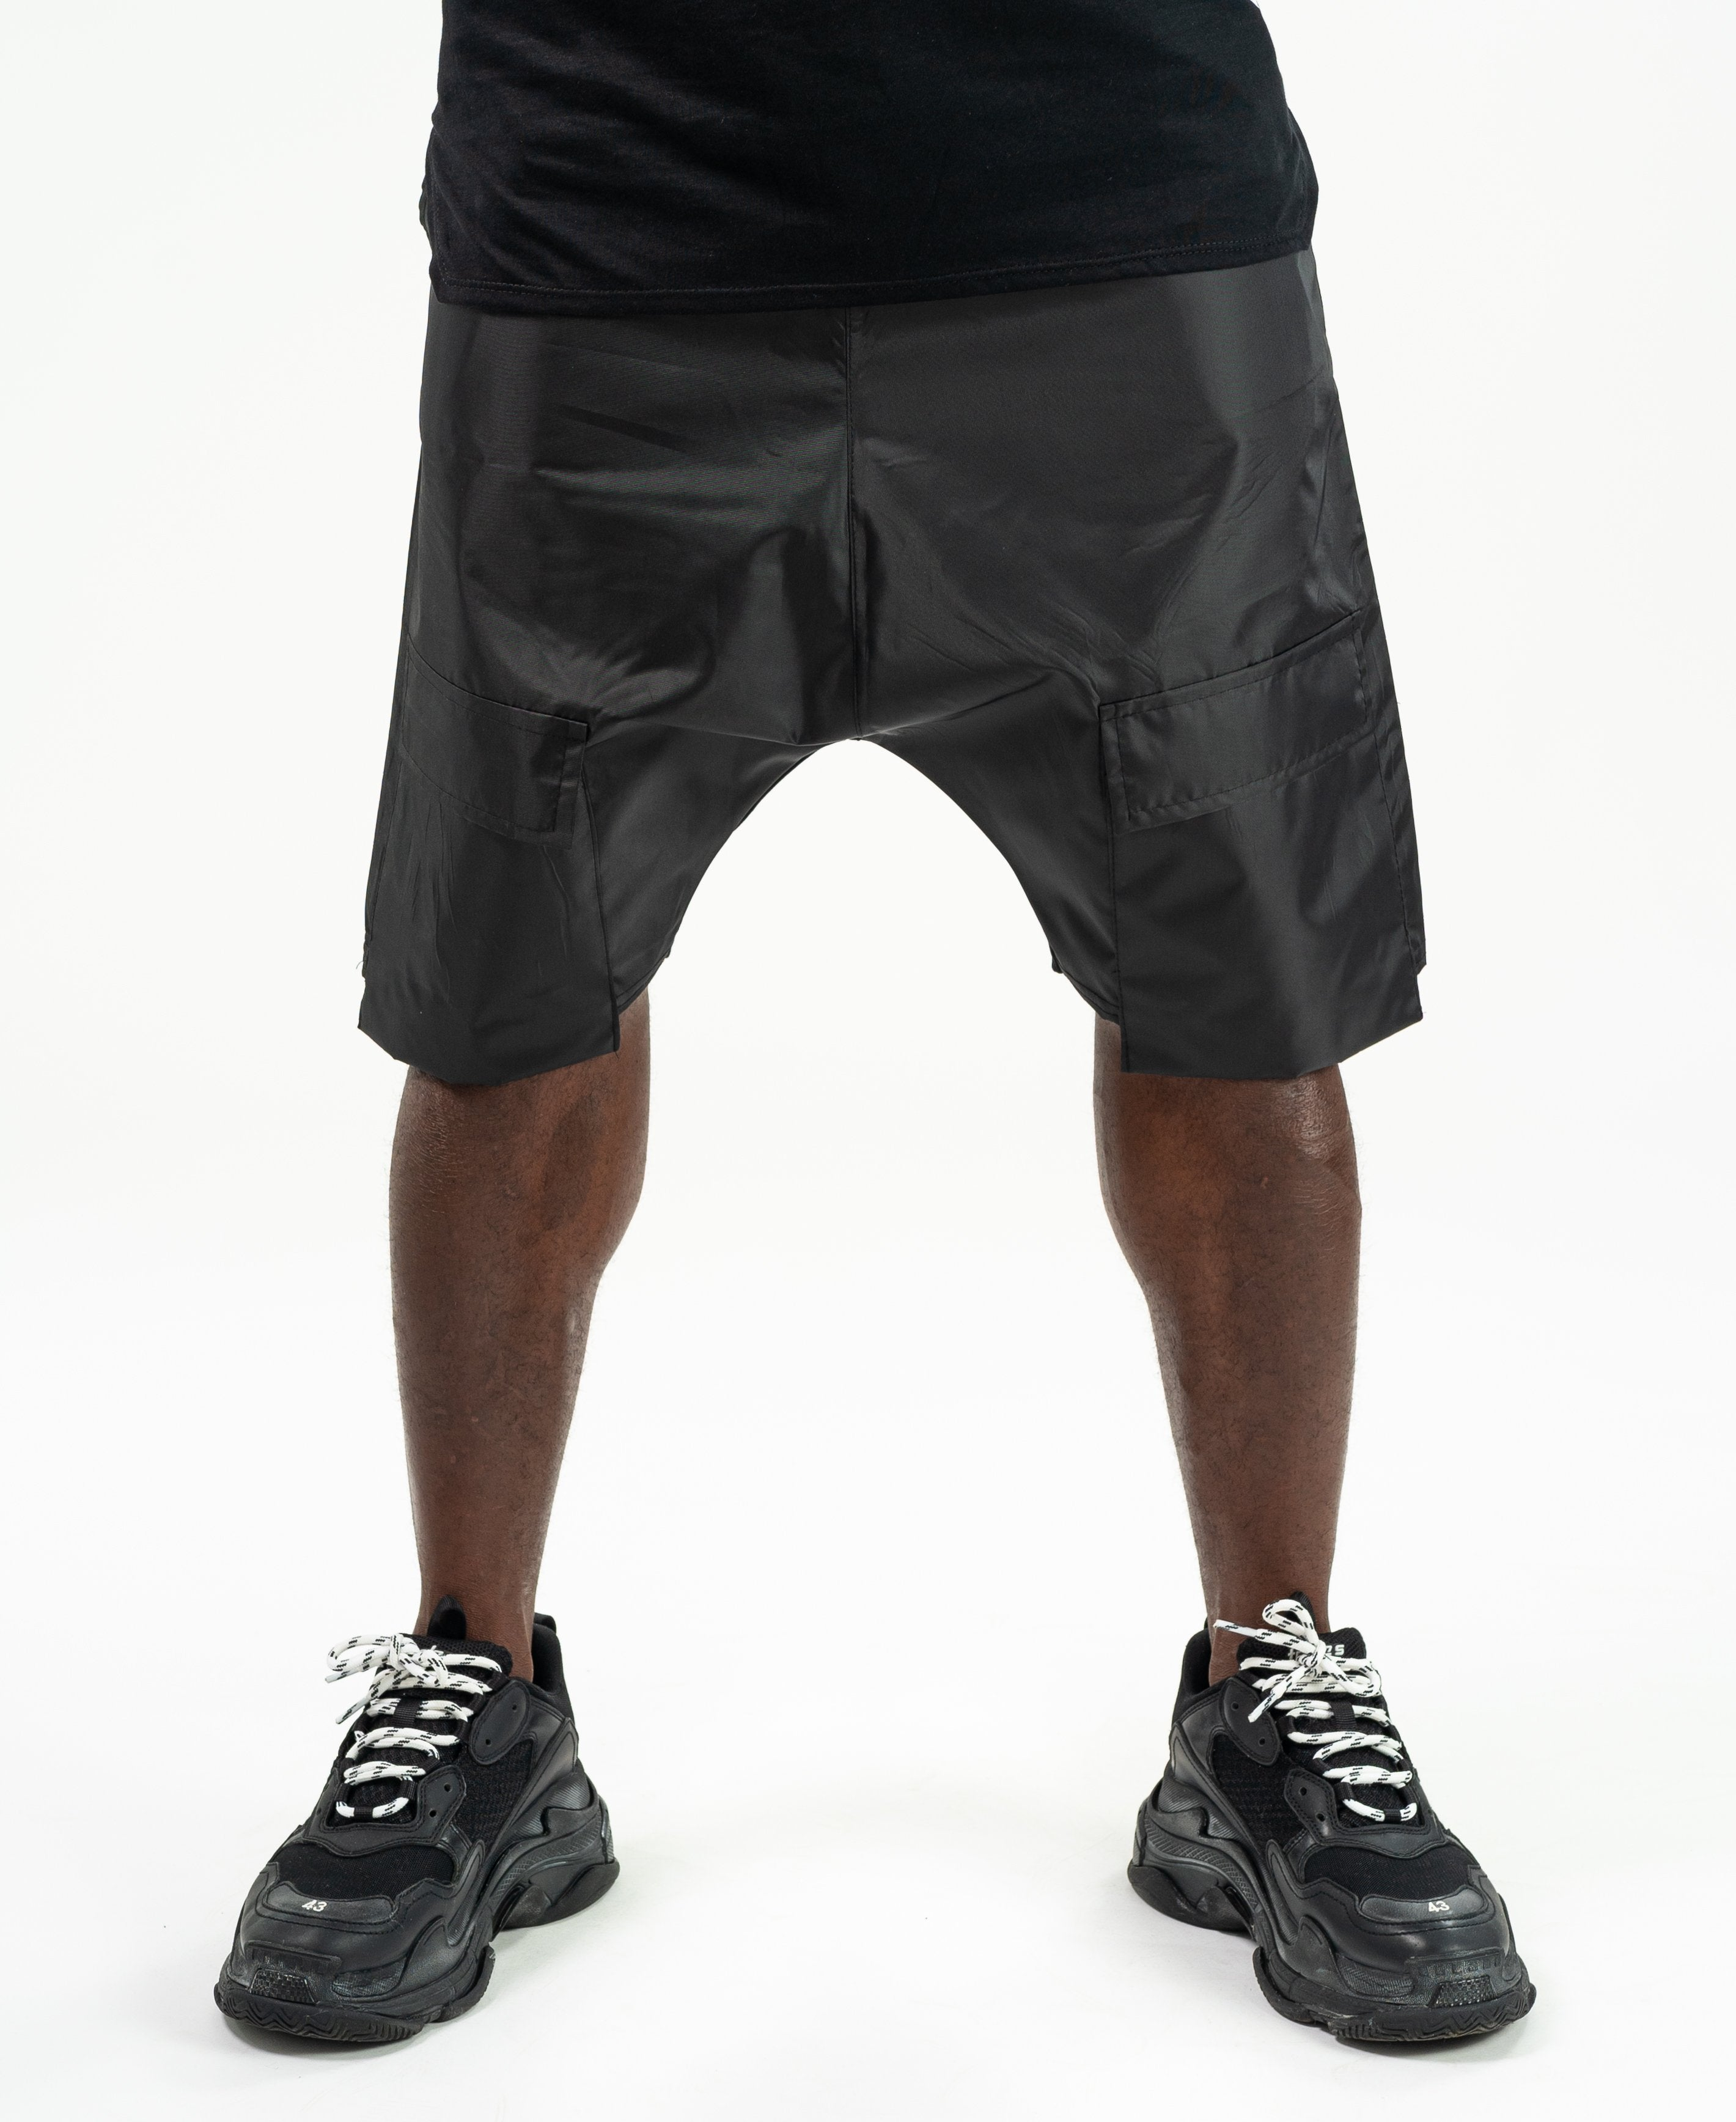 Short Black trousers with front pockets design - Fatai Style